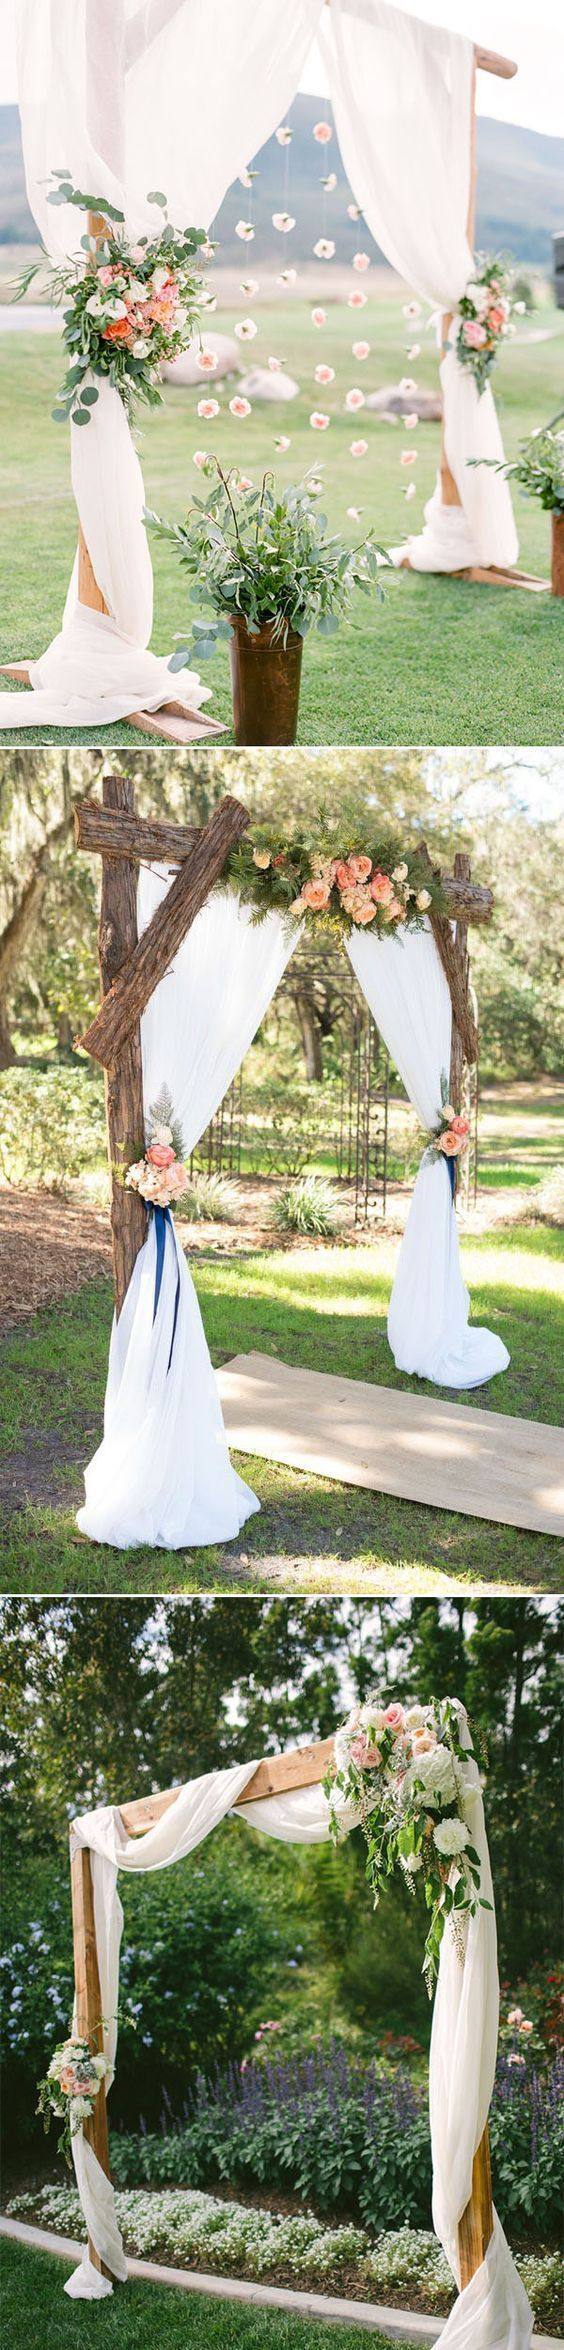 41 Outdoor Rustic Wedding Ideas On A Budget